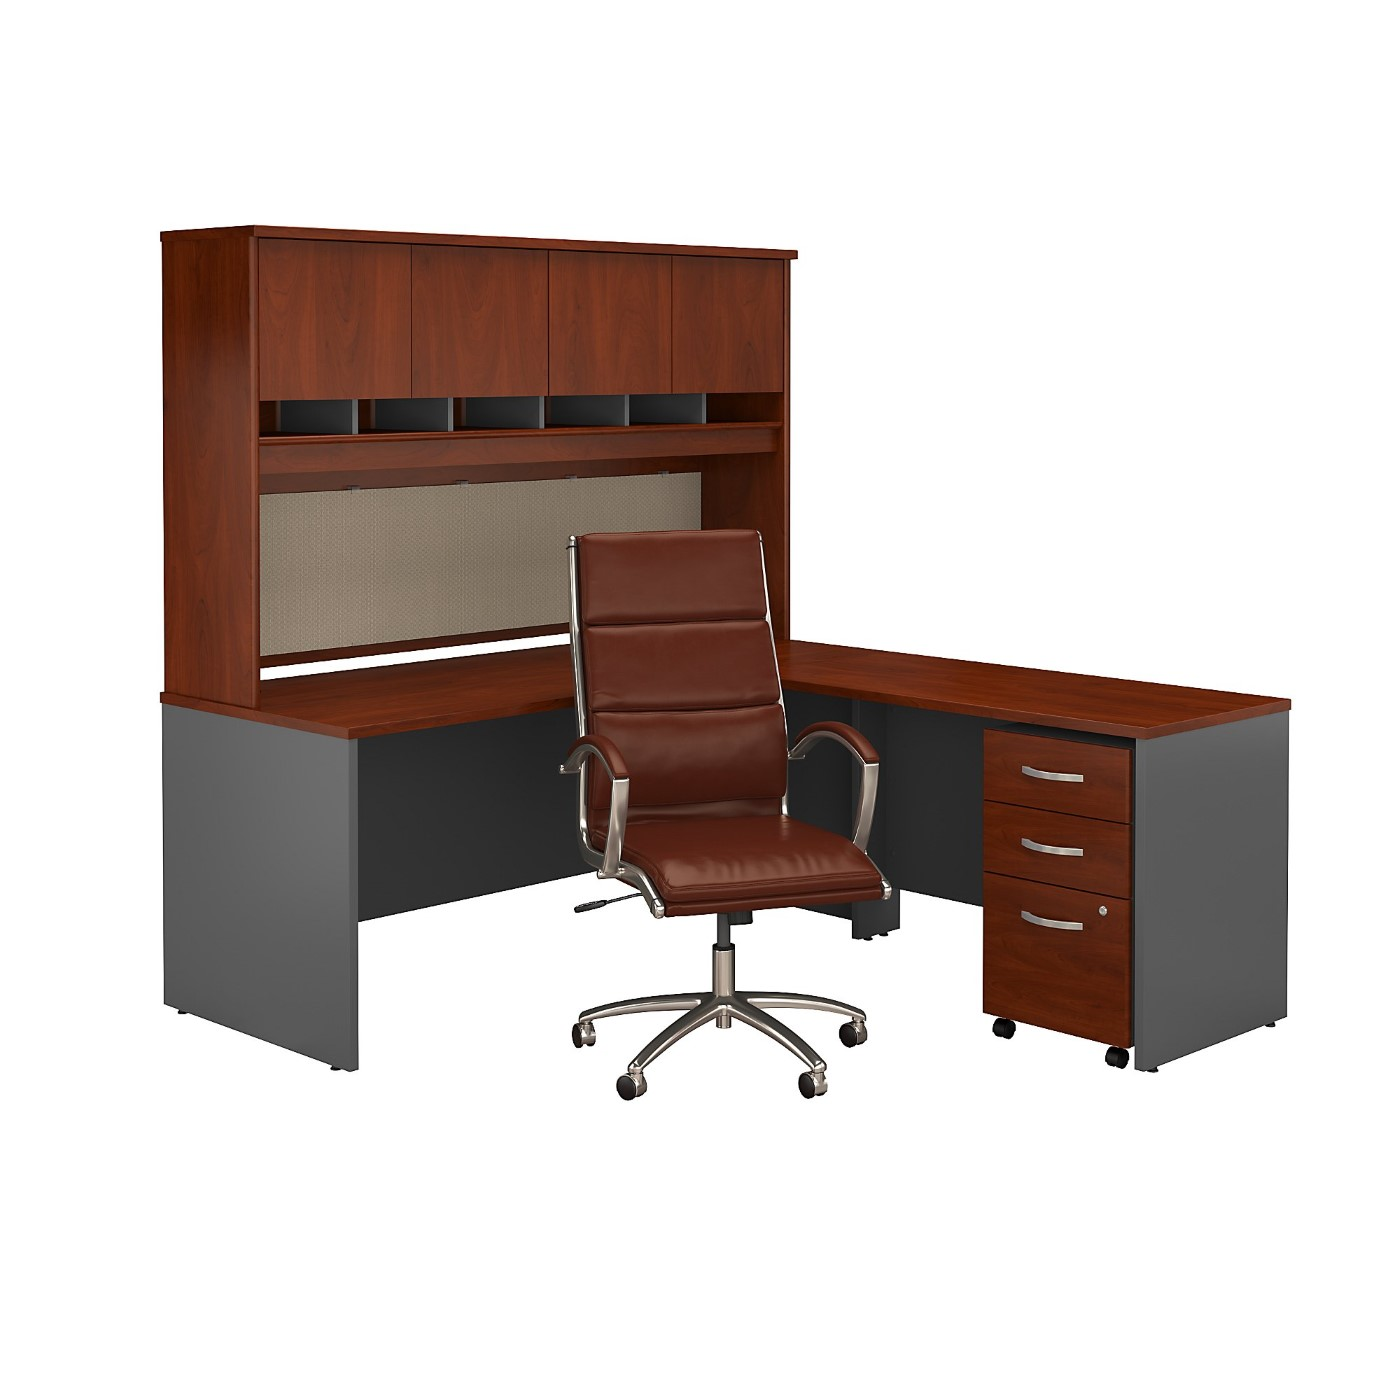 BUSH BUSINESS FURNITURE SERIES C L SHAPED DESK WITH HUTCH, MOBILE FILE CABINET AND HIGH BACK OFFICE CHAIR. FREE SHIPPING